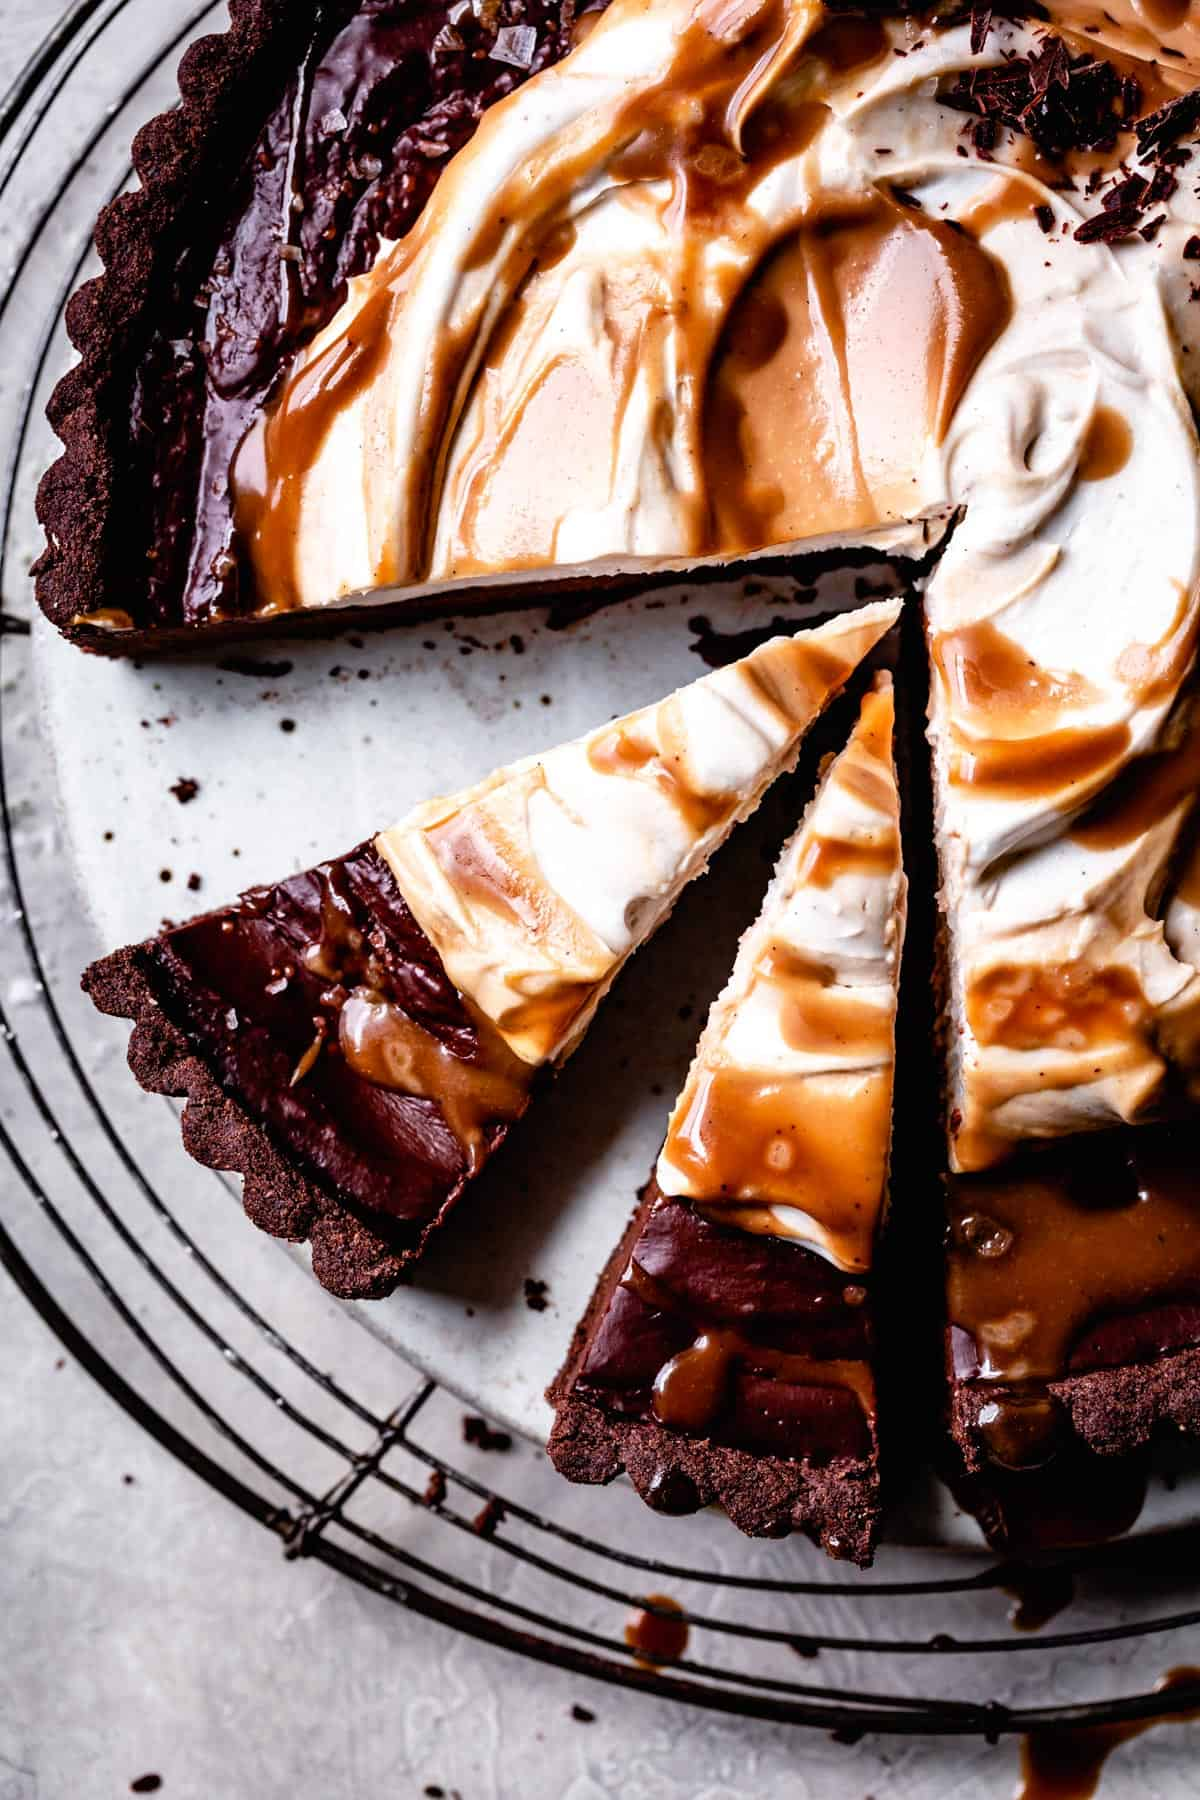 close up of Gluten Free Vegan Chocolate Tart with Tahini and Caramel